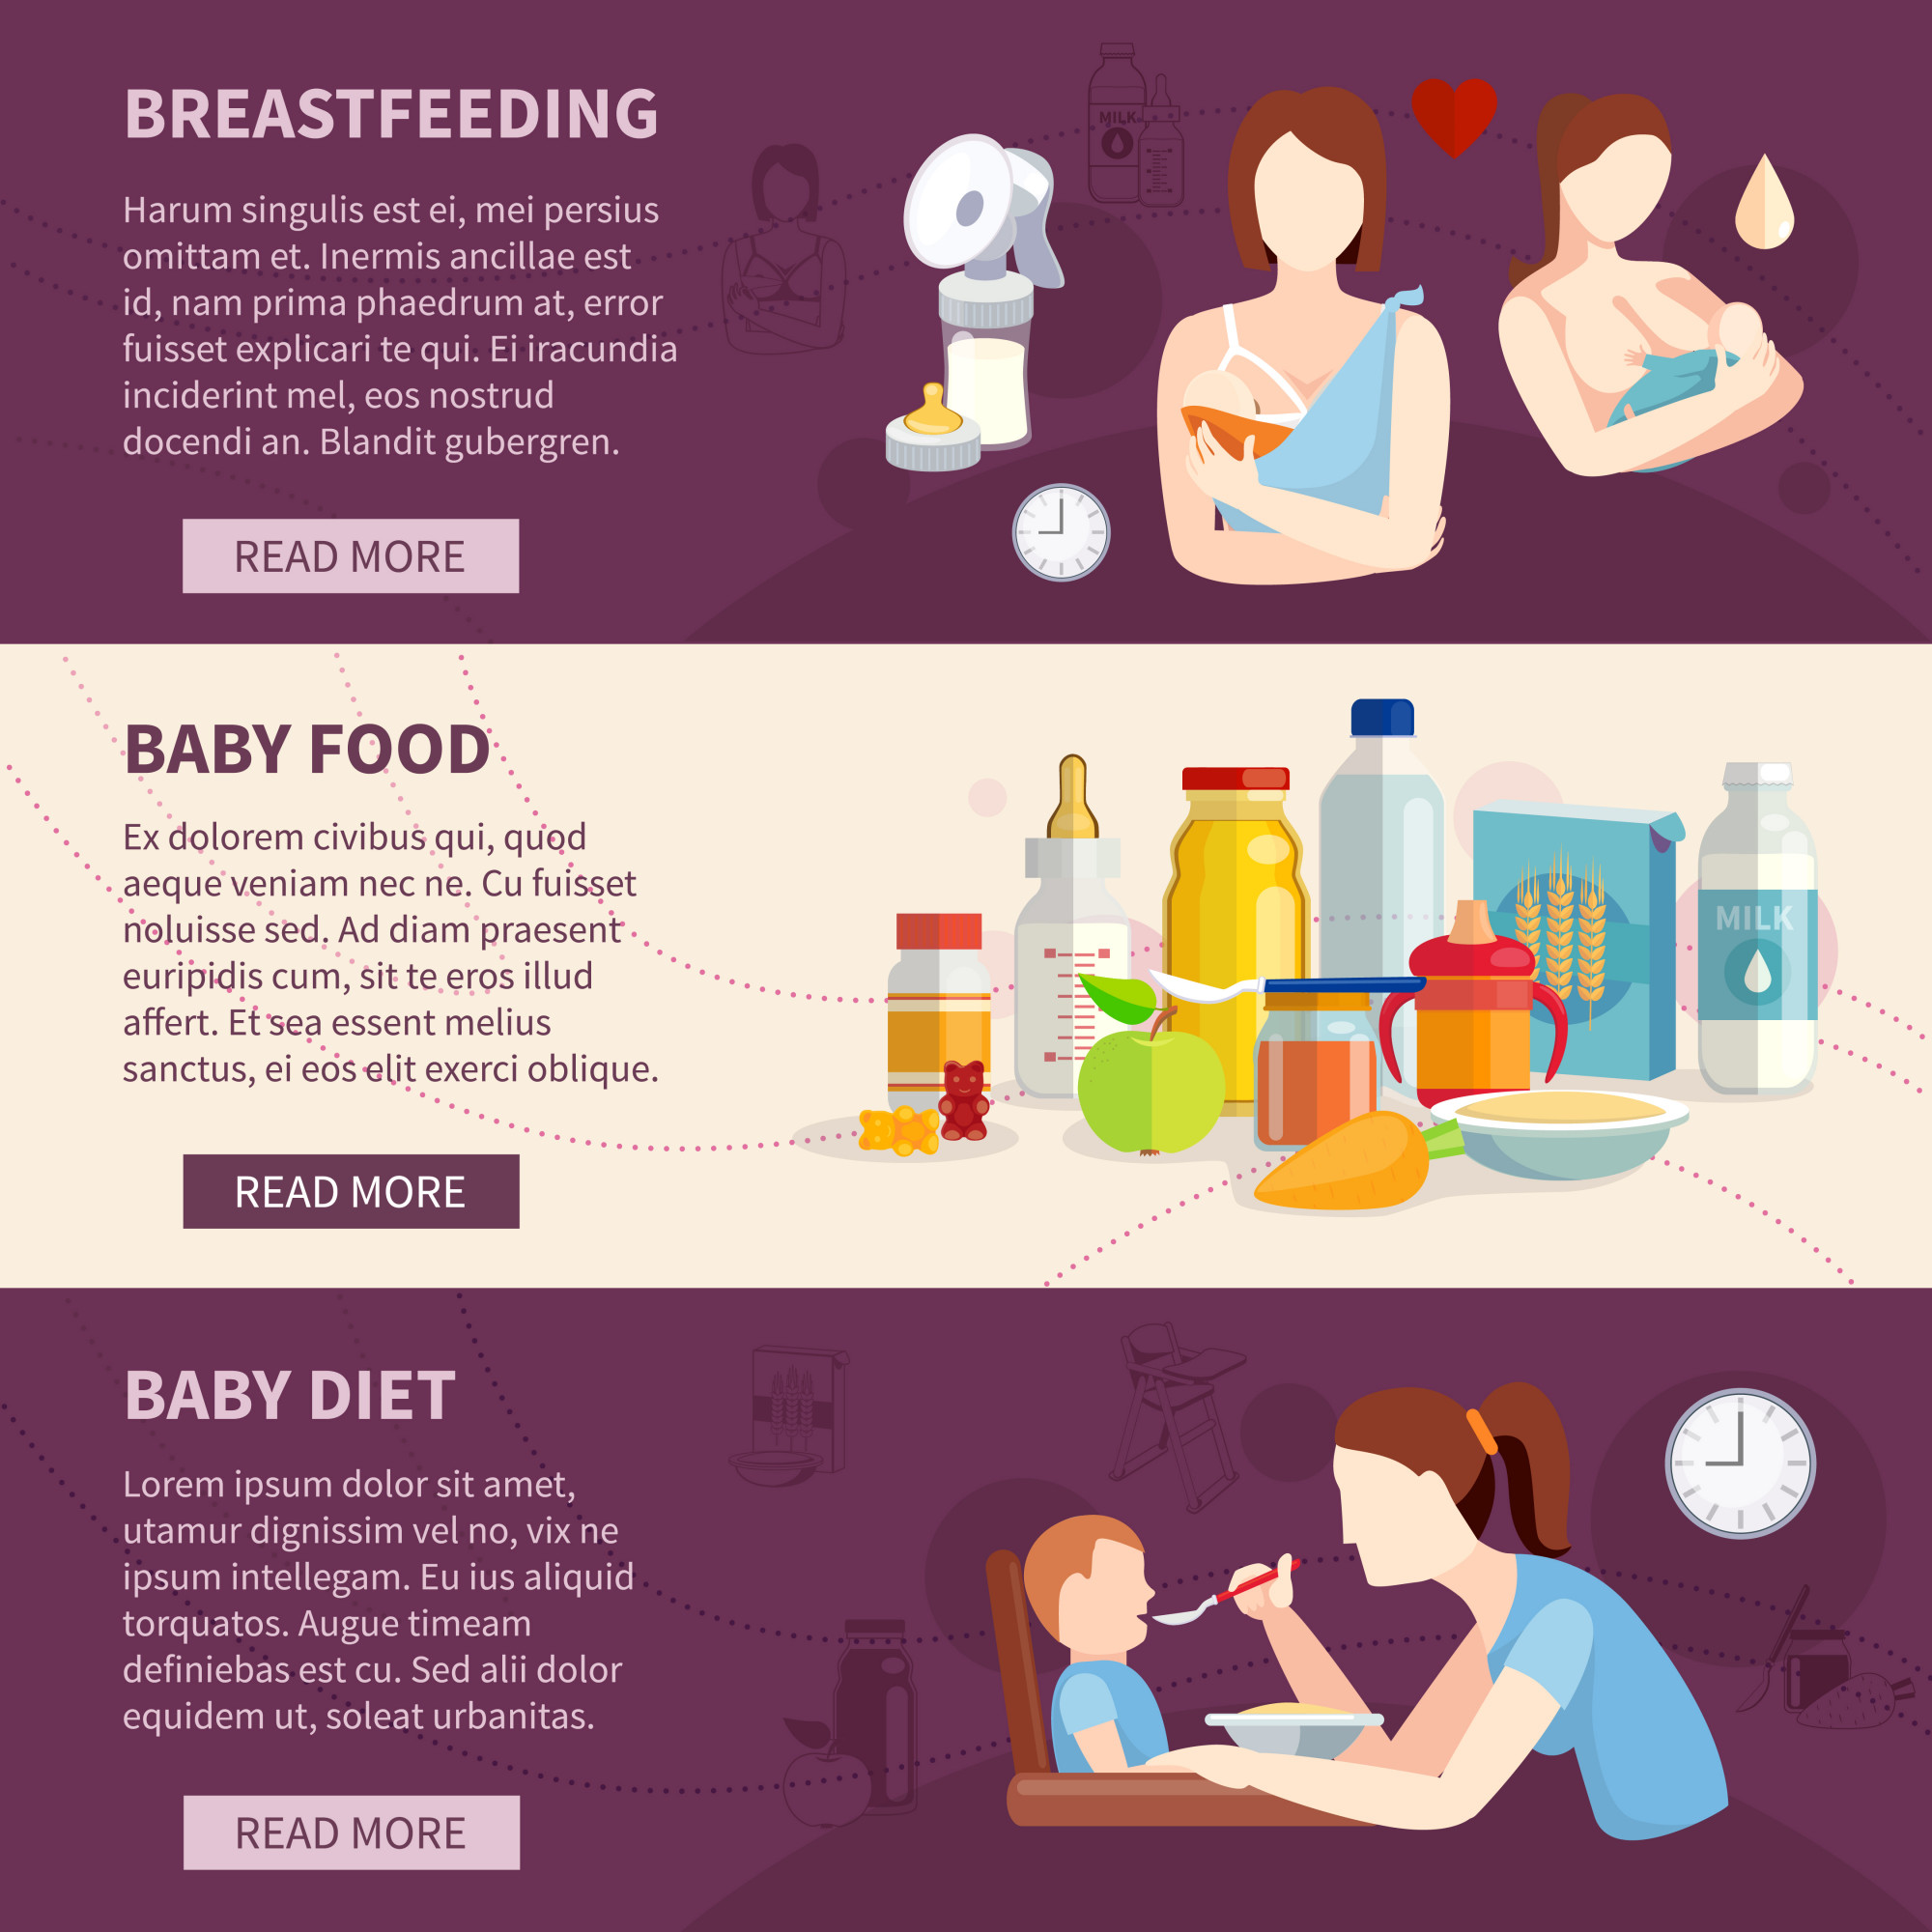 Information on babies breastfeeding and toddlers best food choices